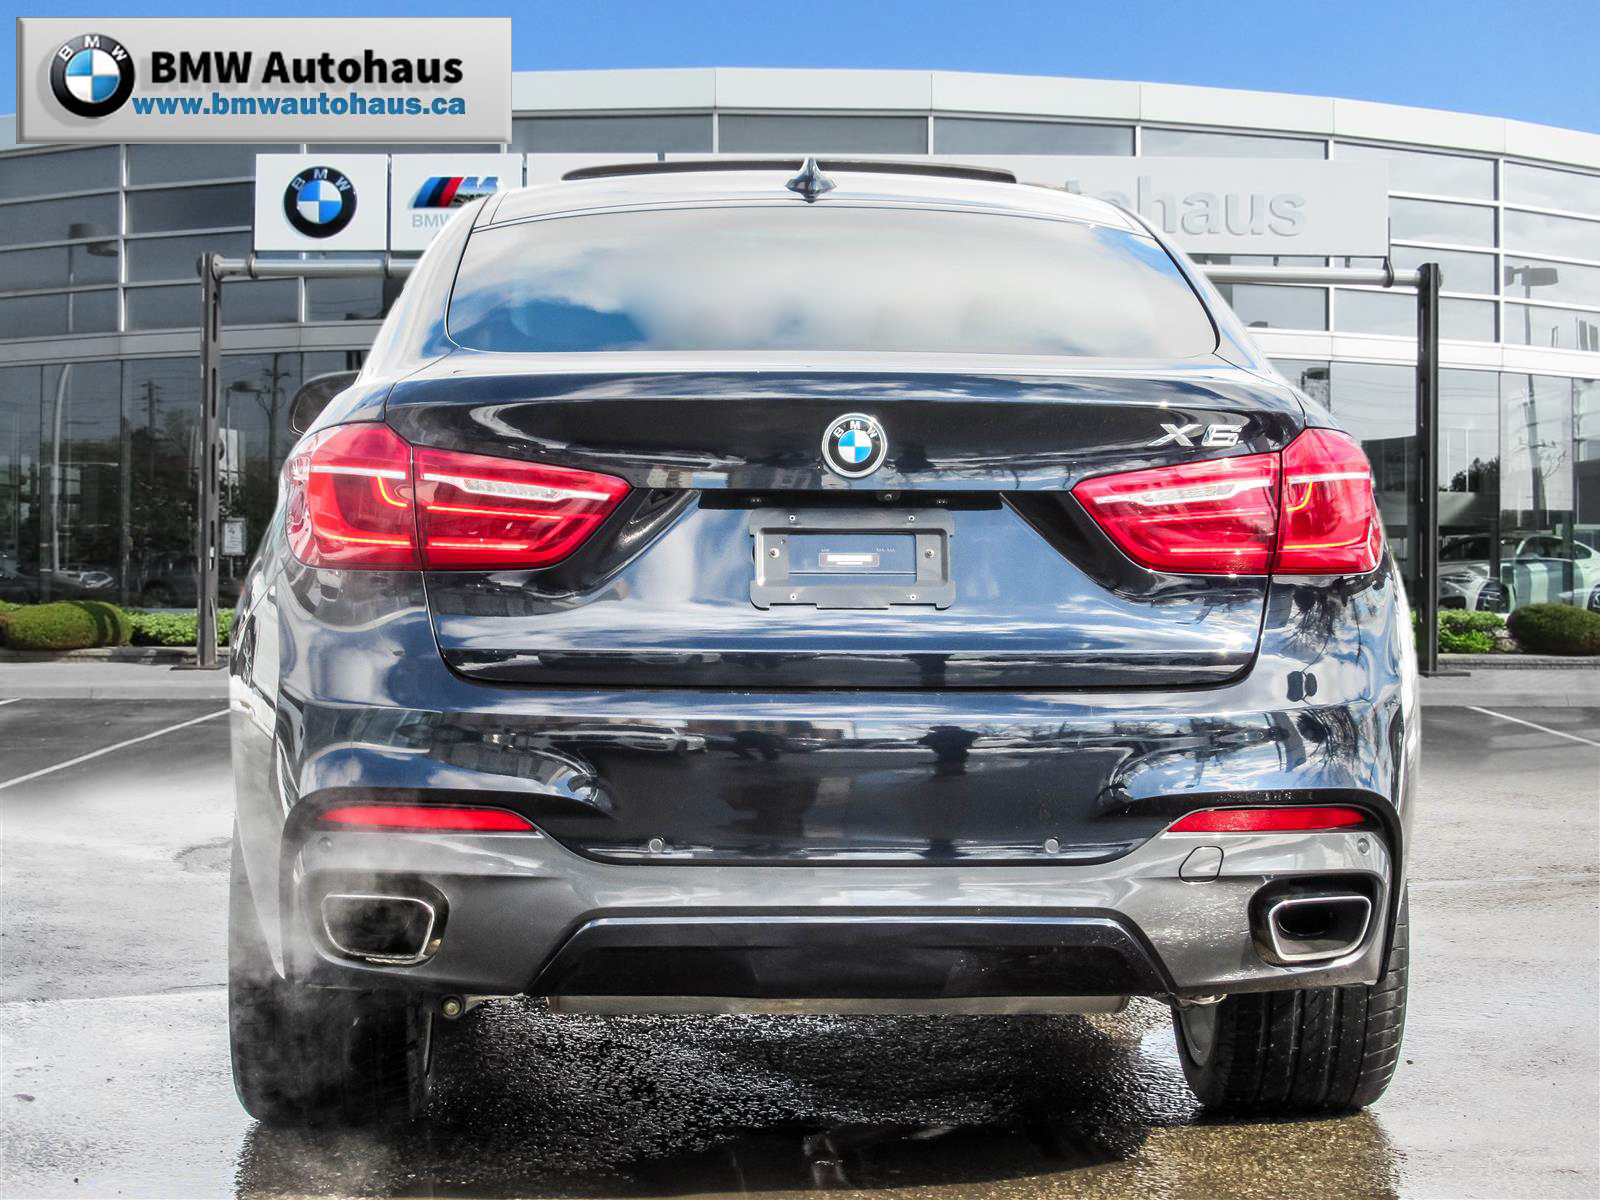 Used 2016 BMW X6 in Thornhill,ON